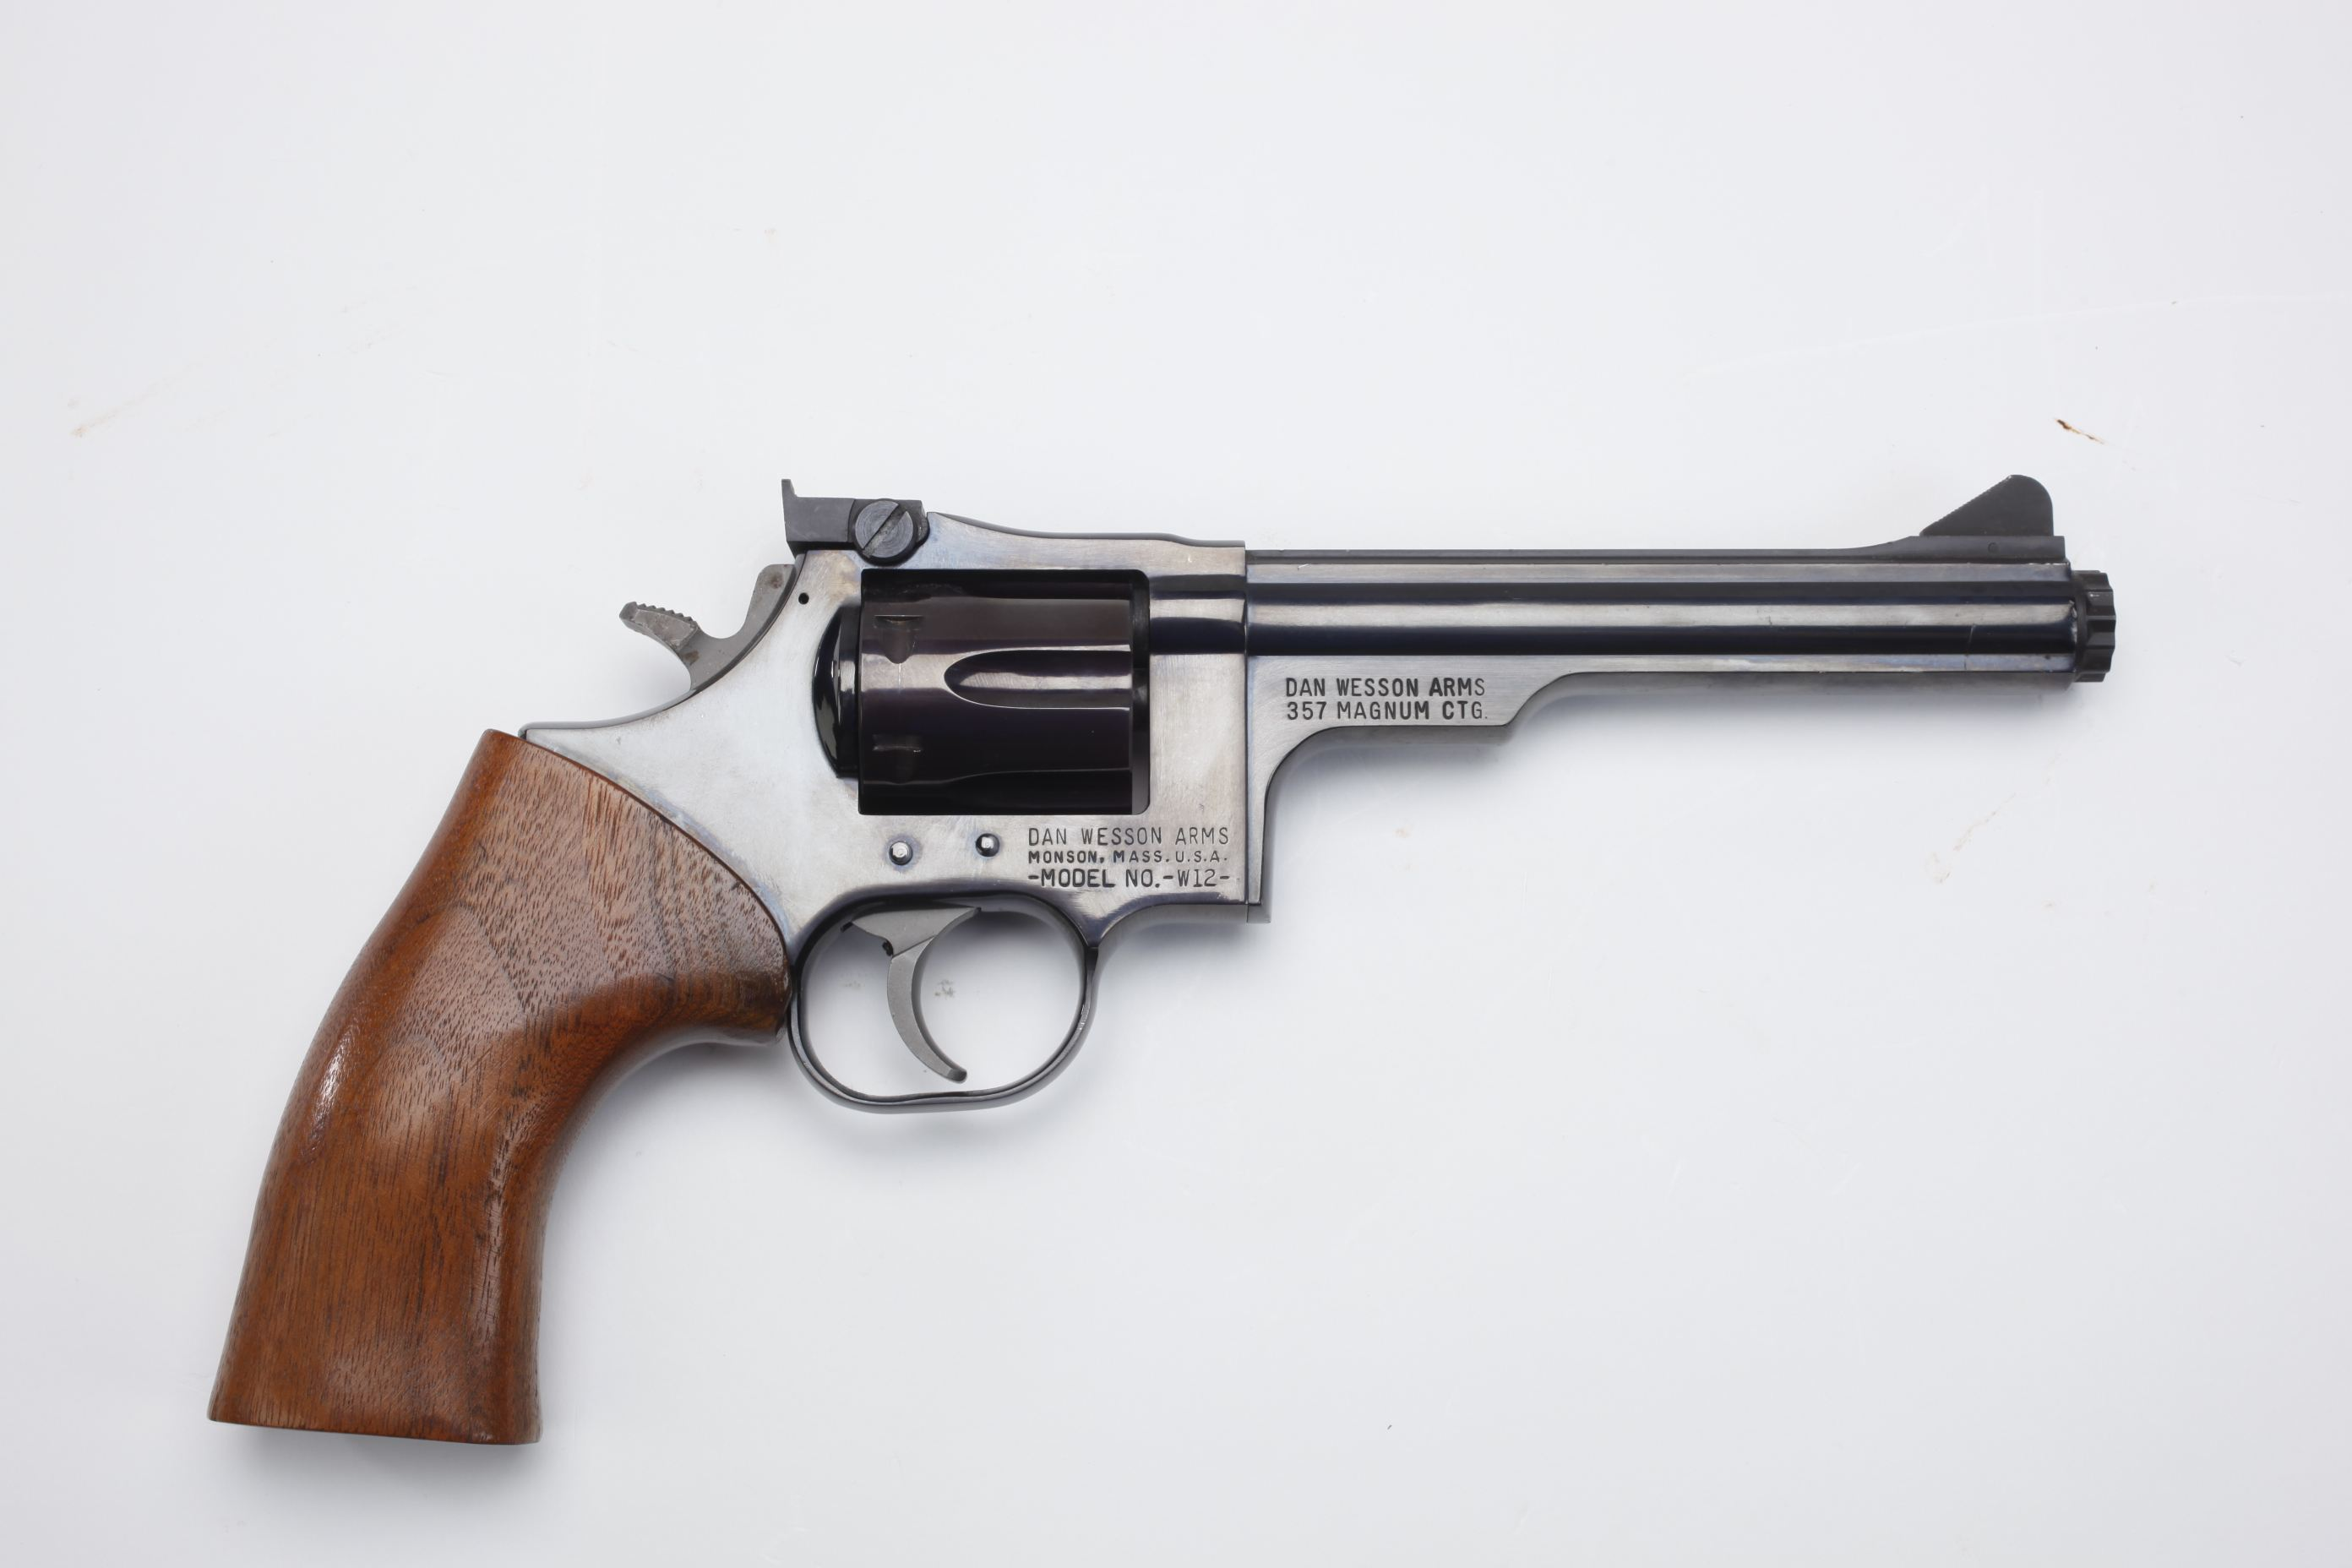 Dan Wesson Model 12 revolver